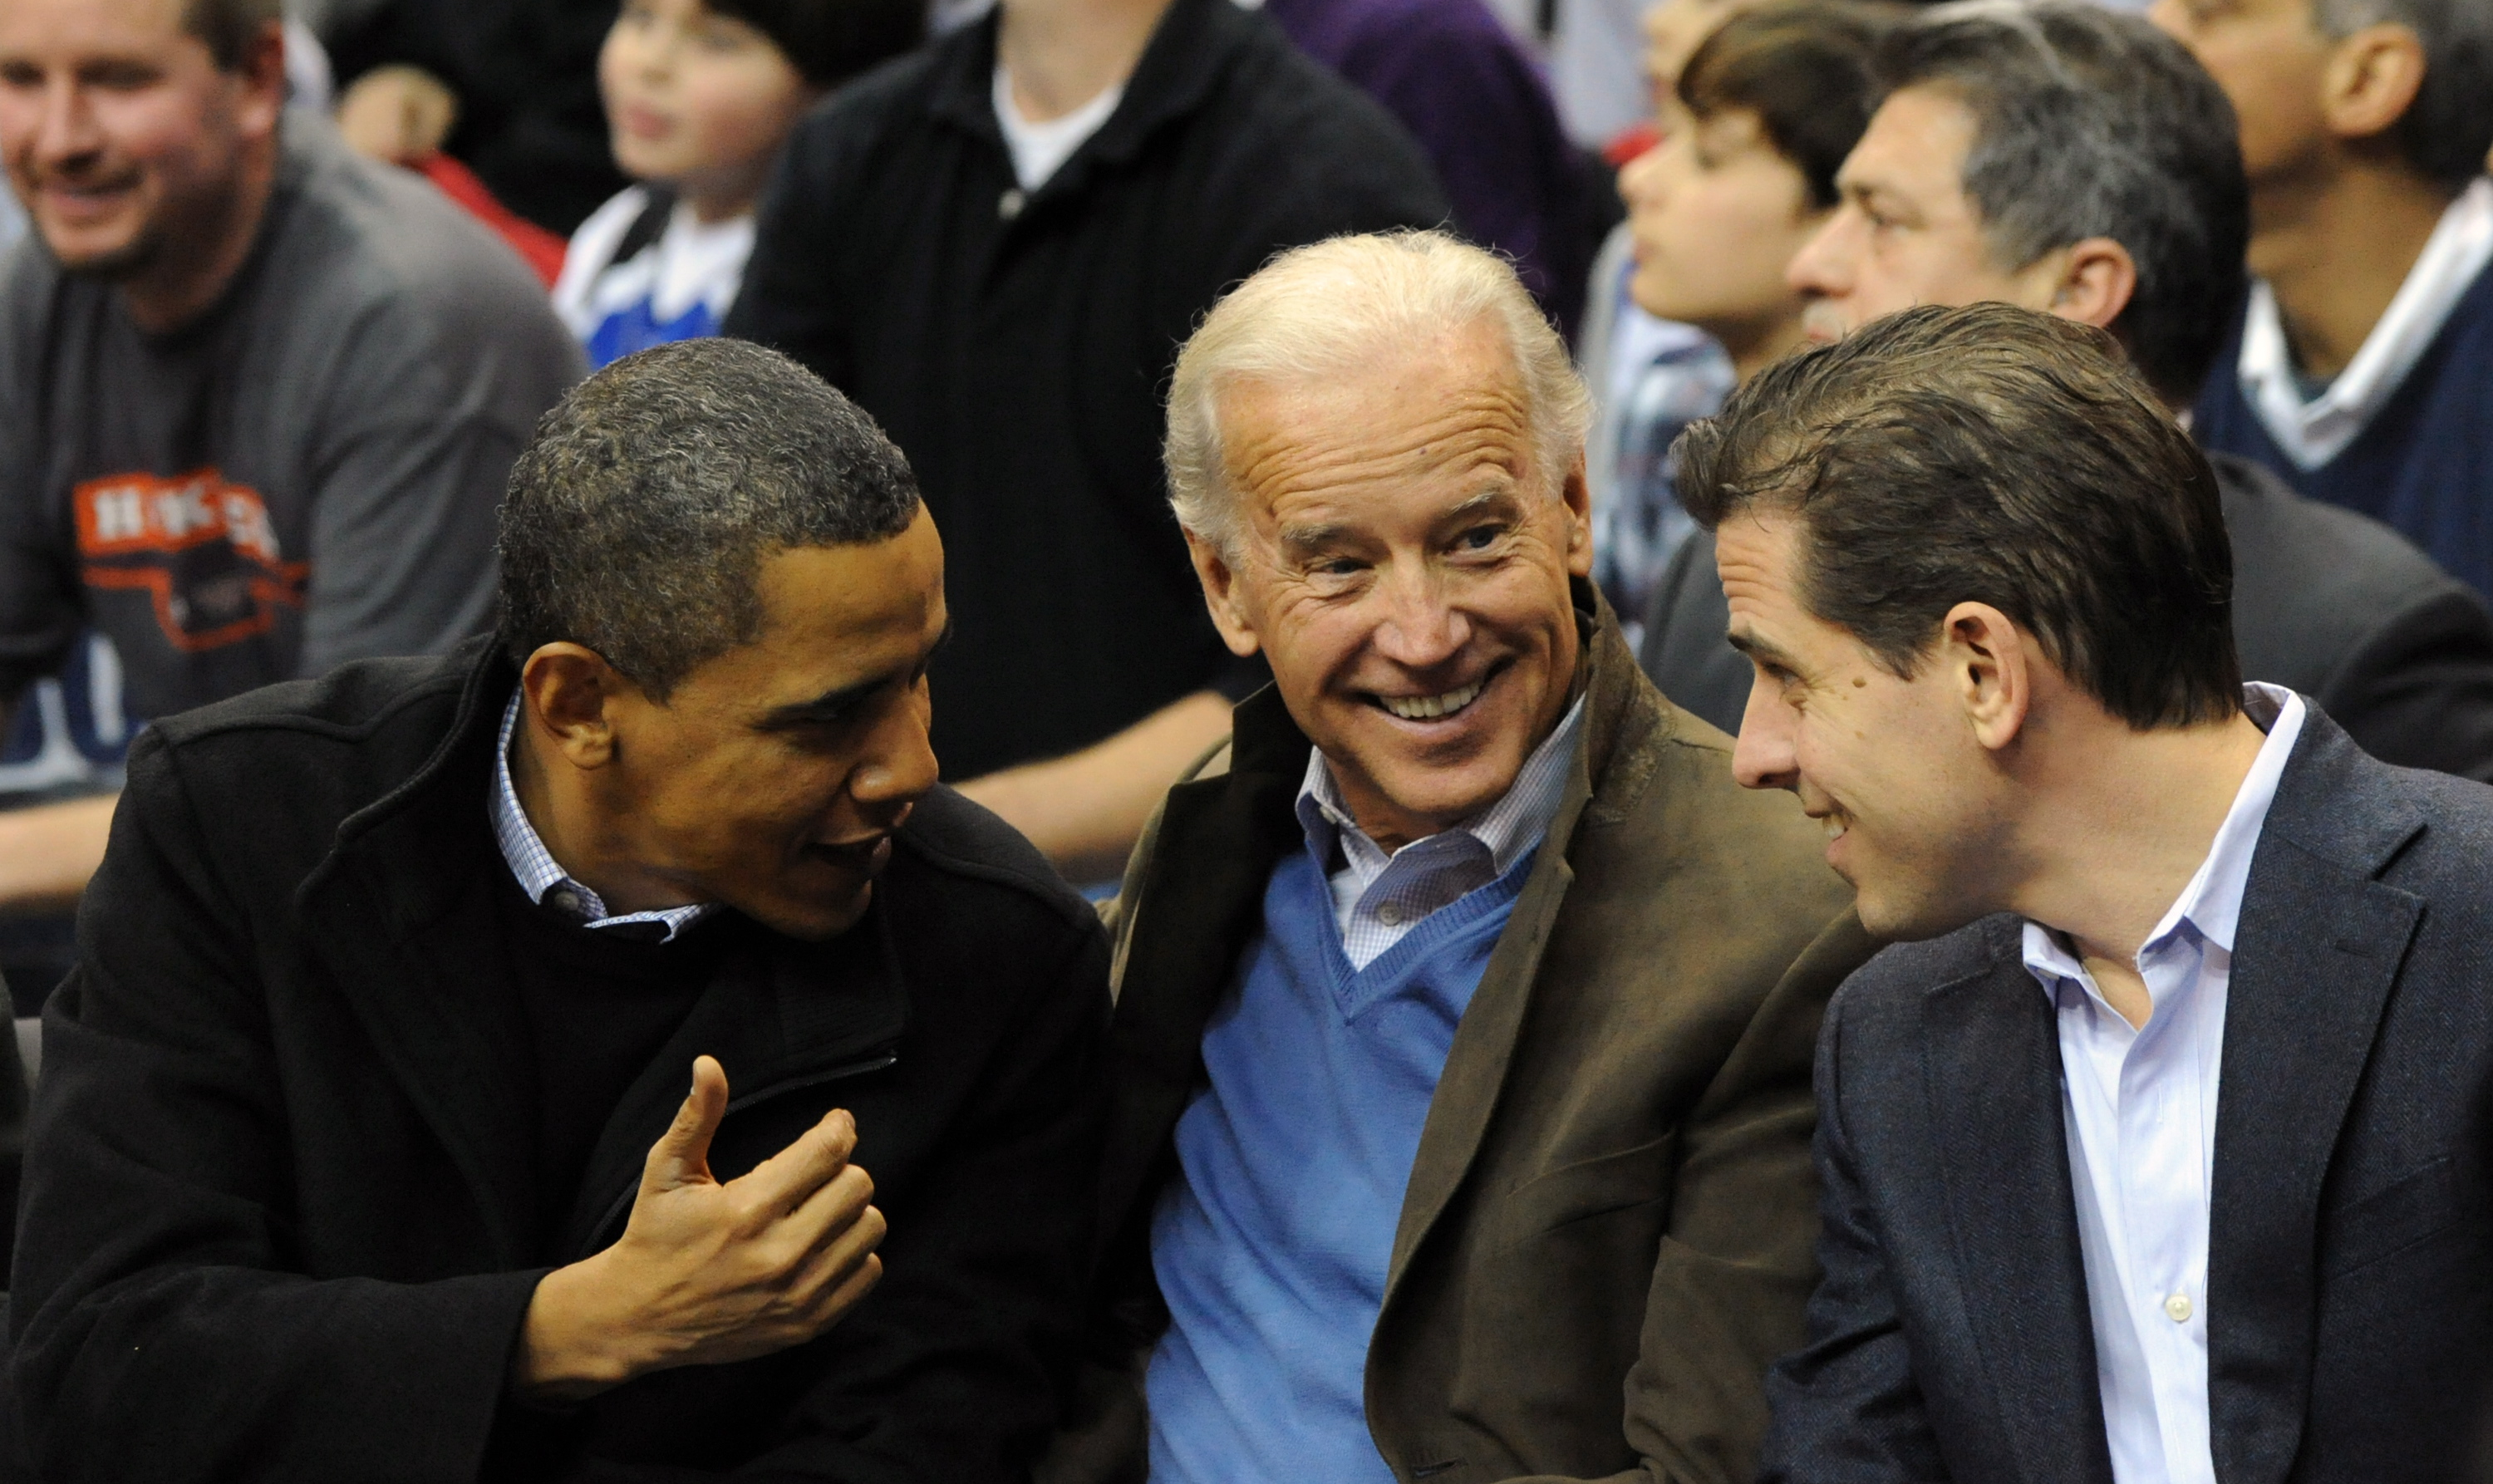 Washington us navy kicked out biden s son over cocaine use